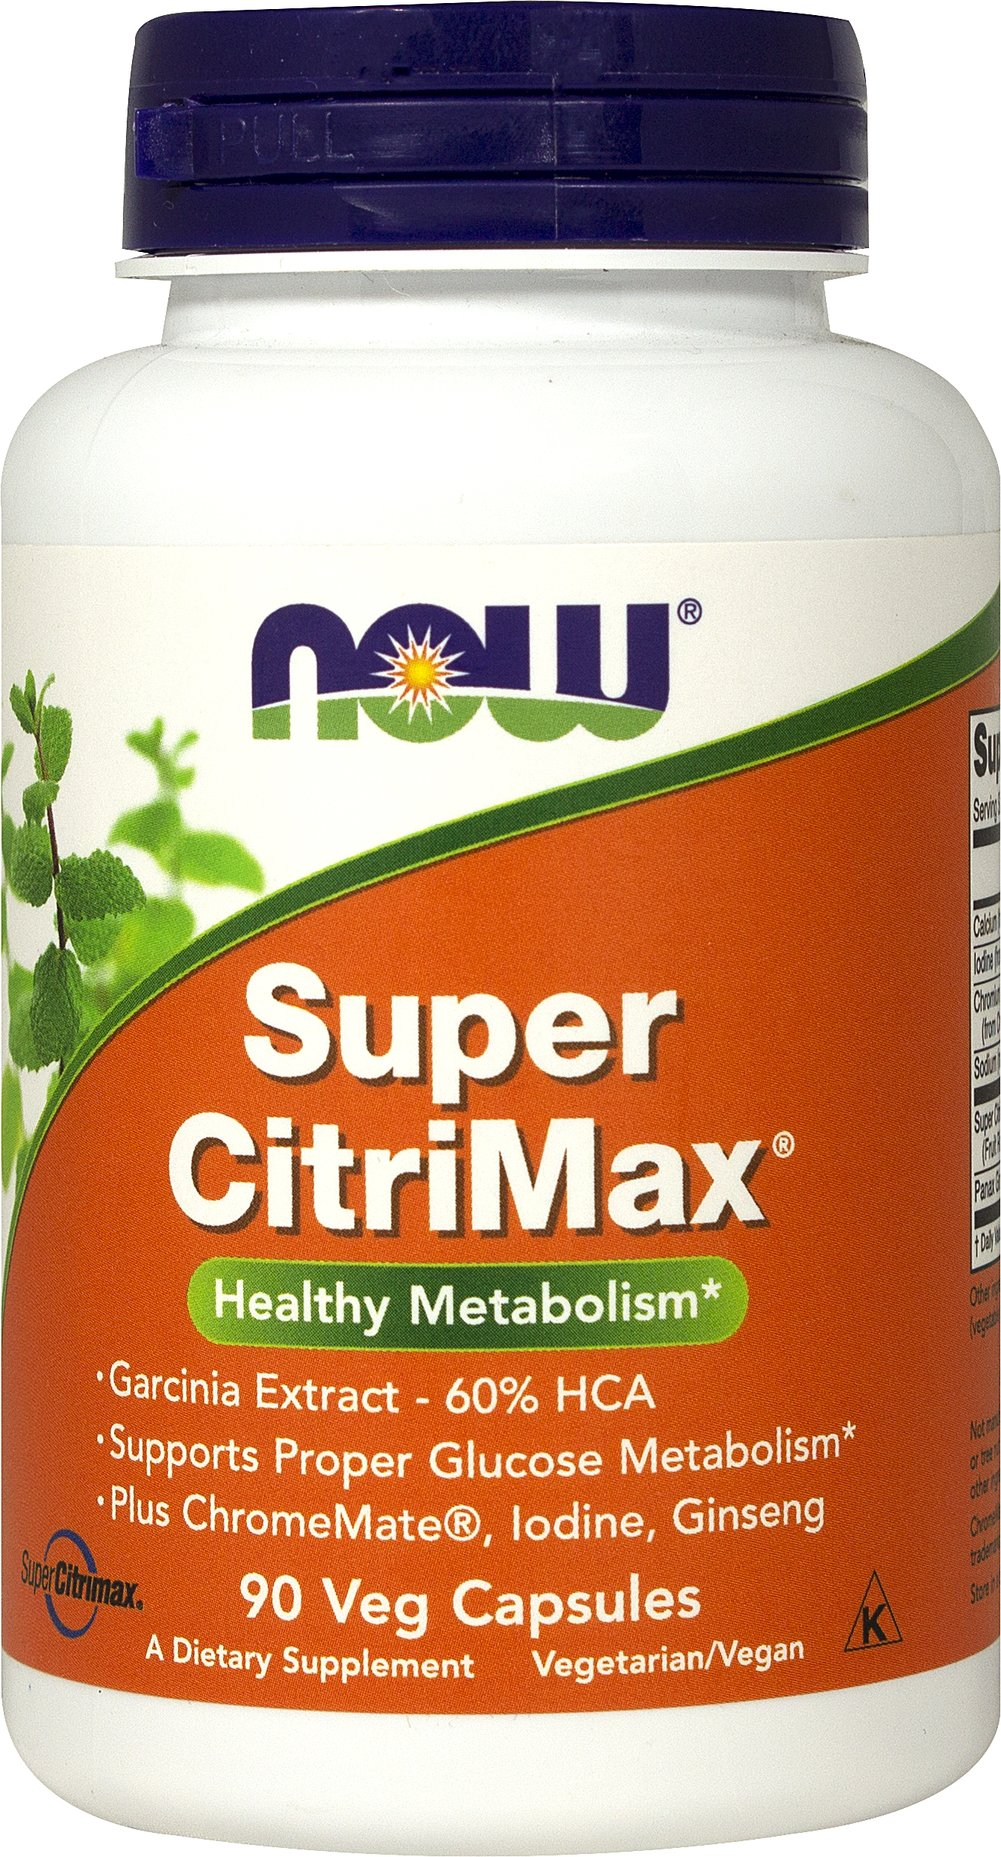 Super Citrimax Thumbnail Alternate Bottle View